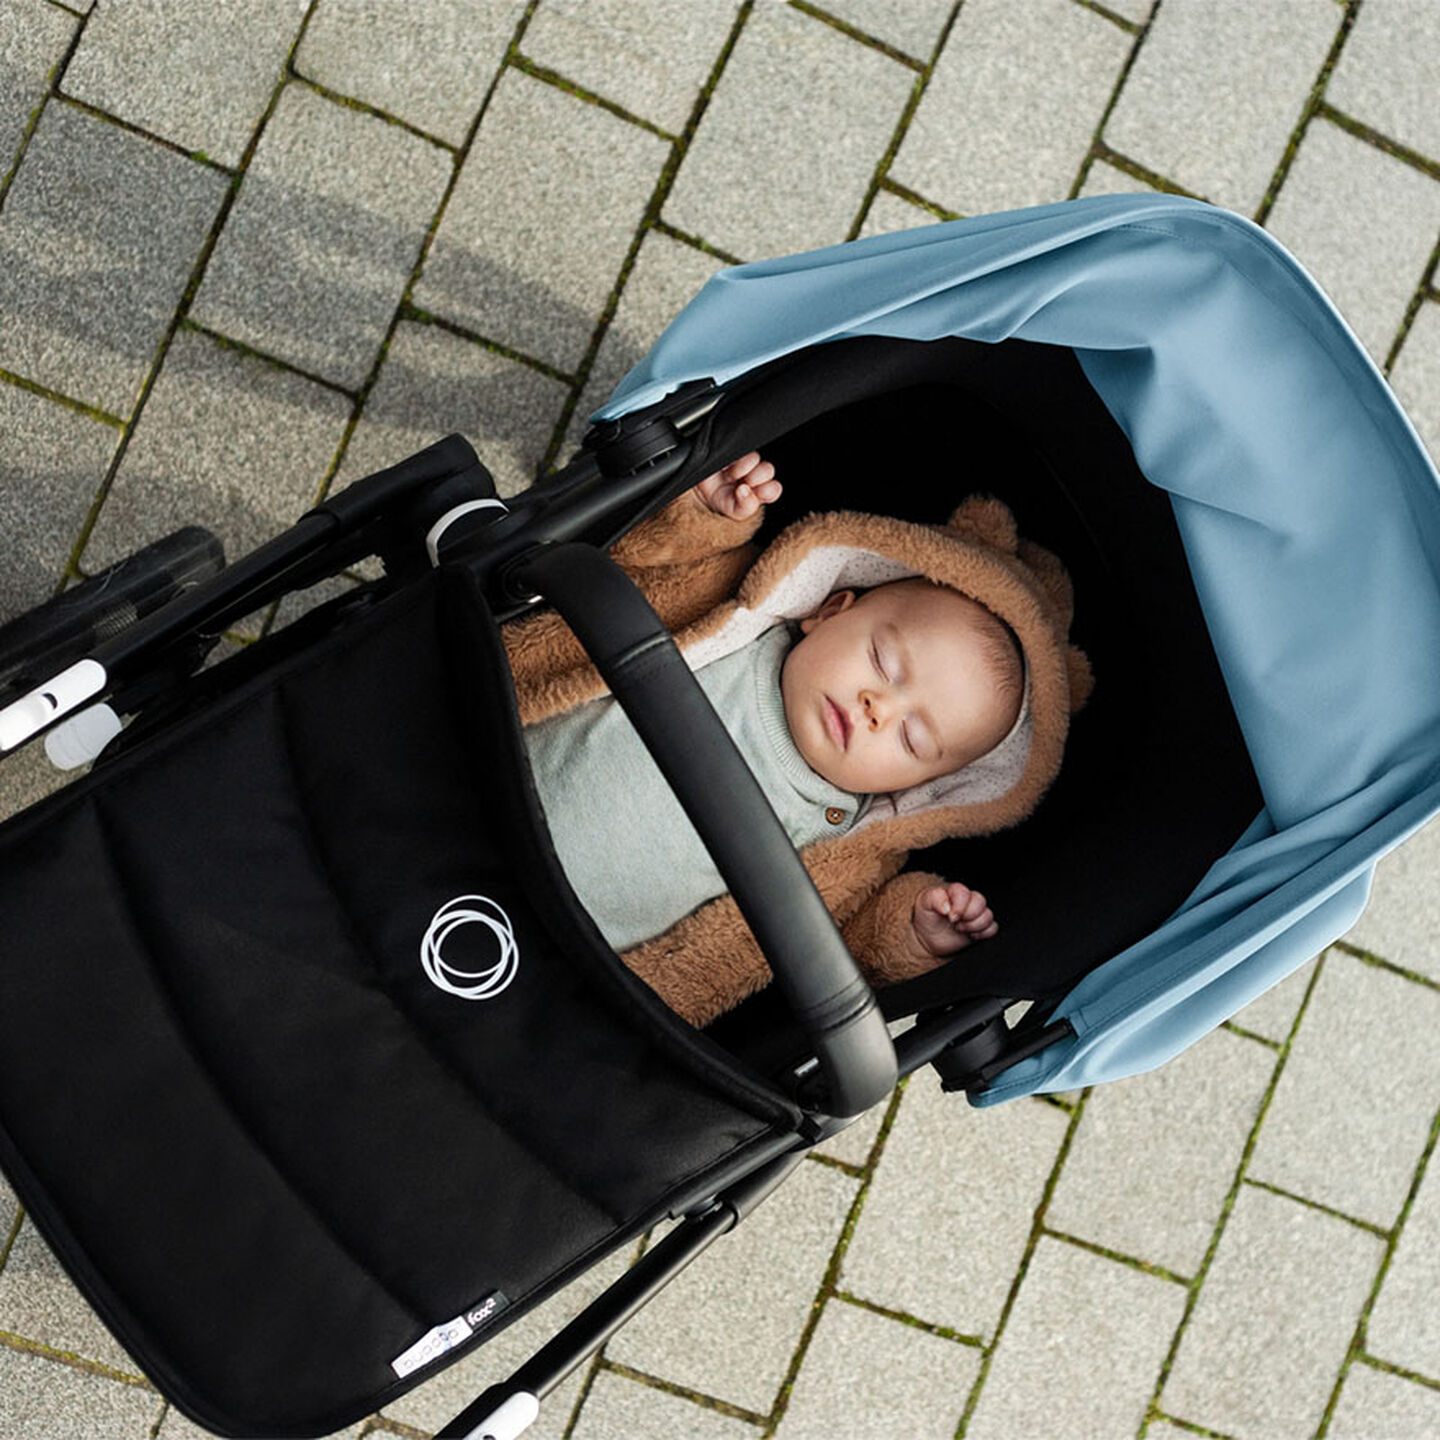 Baby napping in a stroller